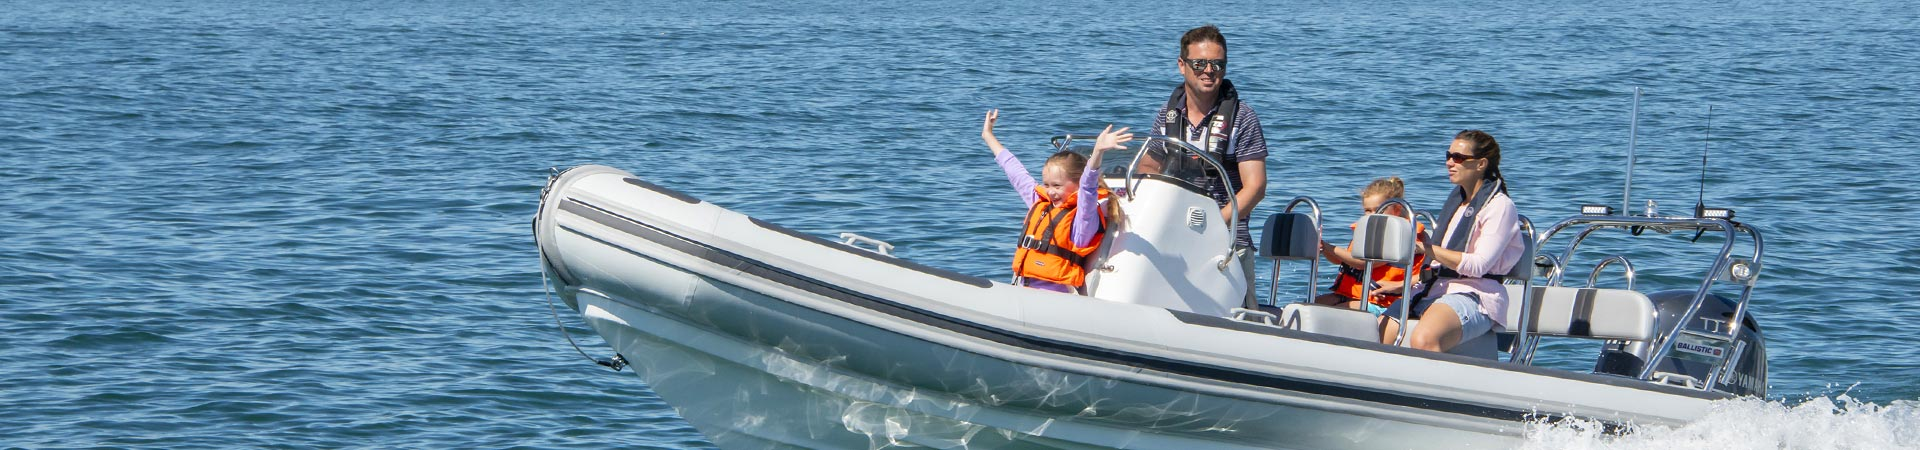 New & Second Hand RIBs & Engines for sale - Family on RIB